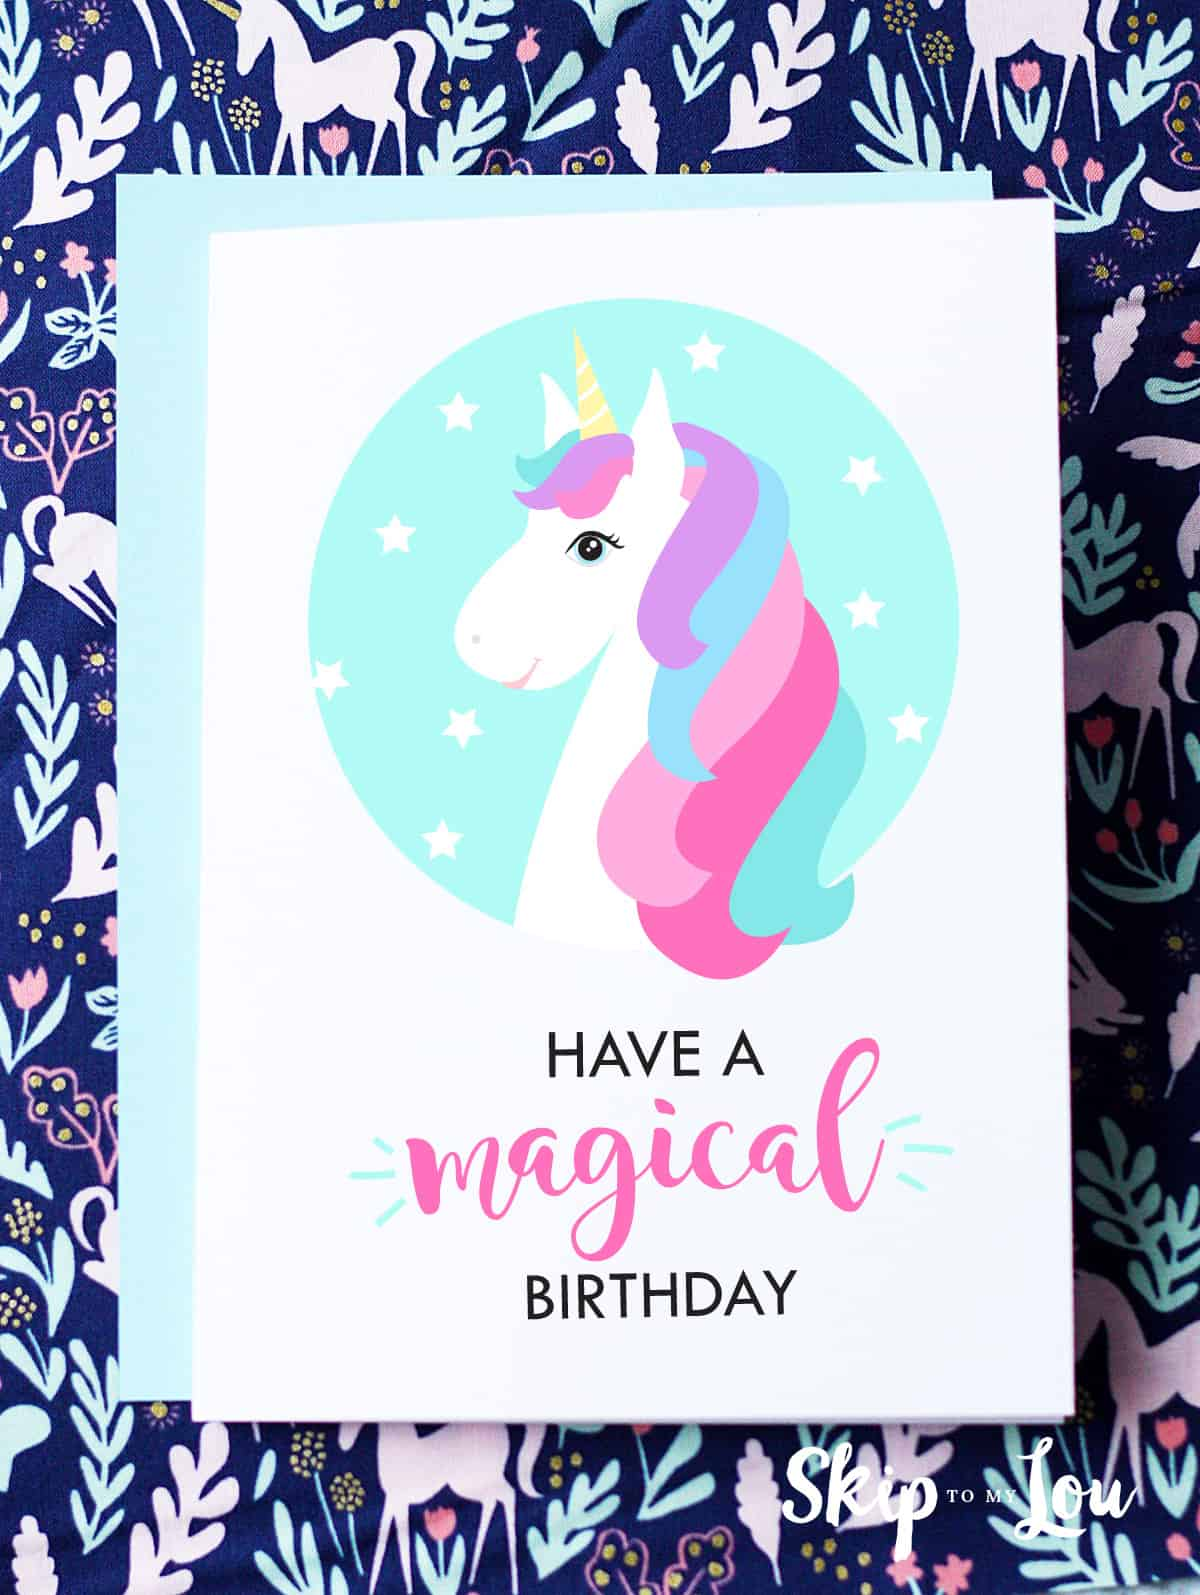 printable birthday cards | skip to my lou